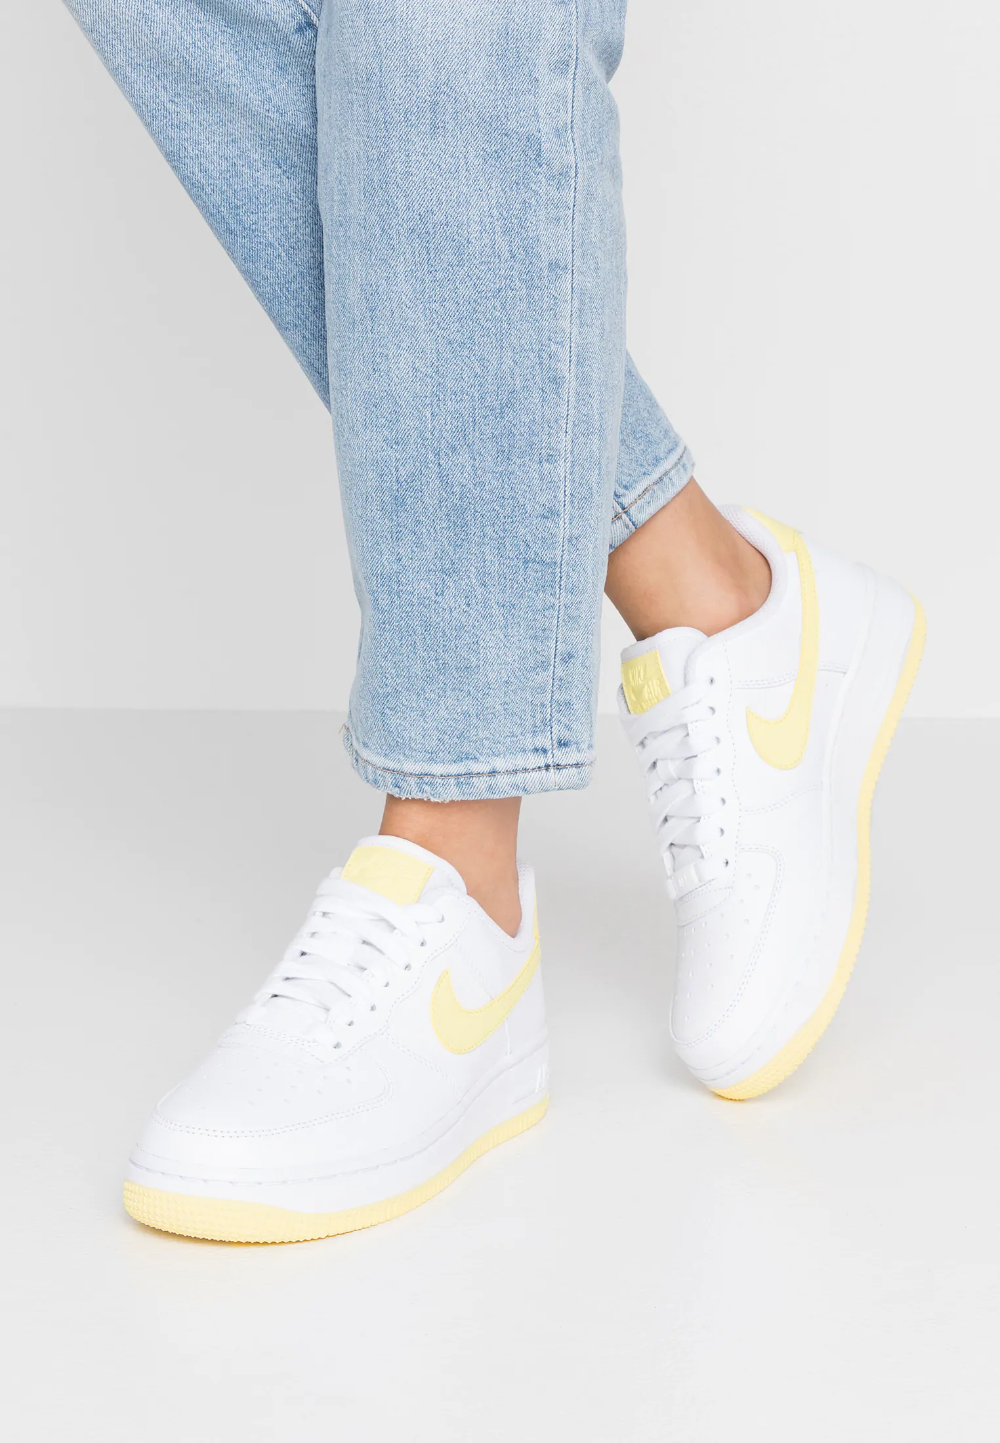 Air Force 107 Baskets Basses Whitebicycle Yellowdark Sulfur Zalandofr Nike Shoes Air Force Nike Air Shoes White Nike Shoes